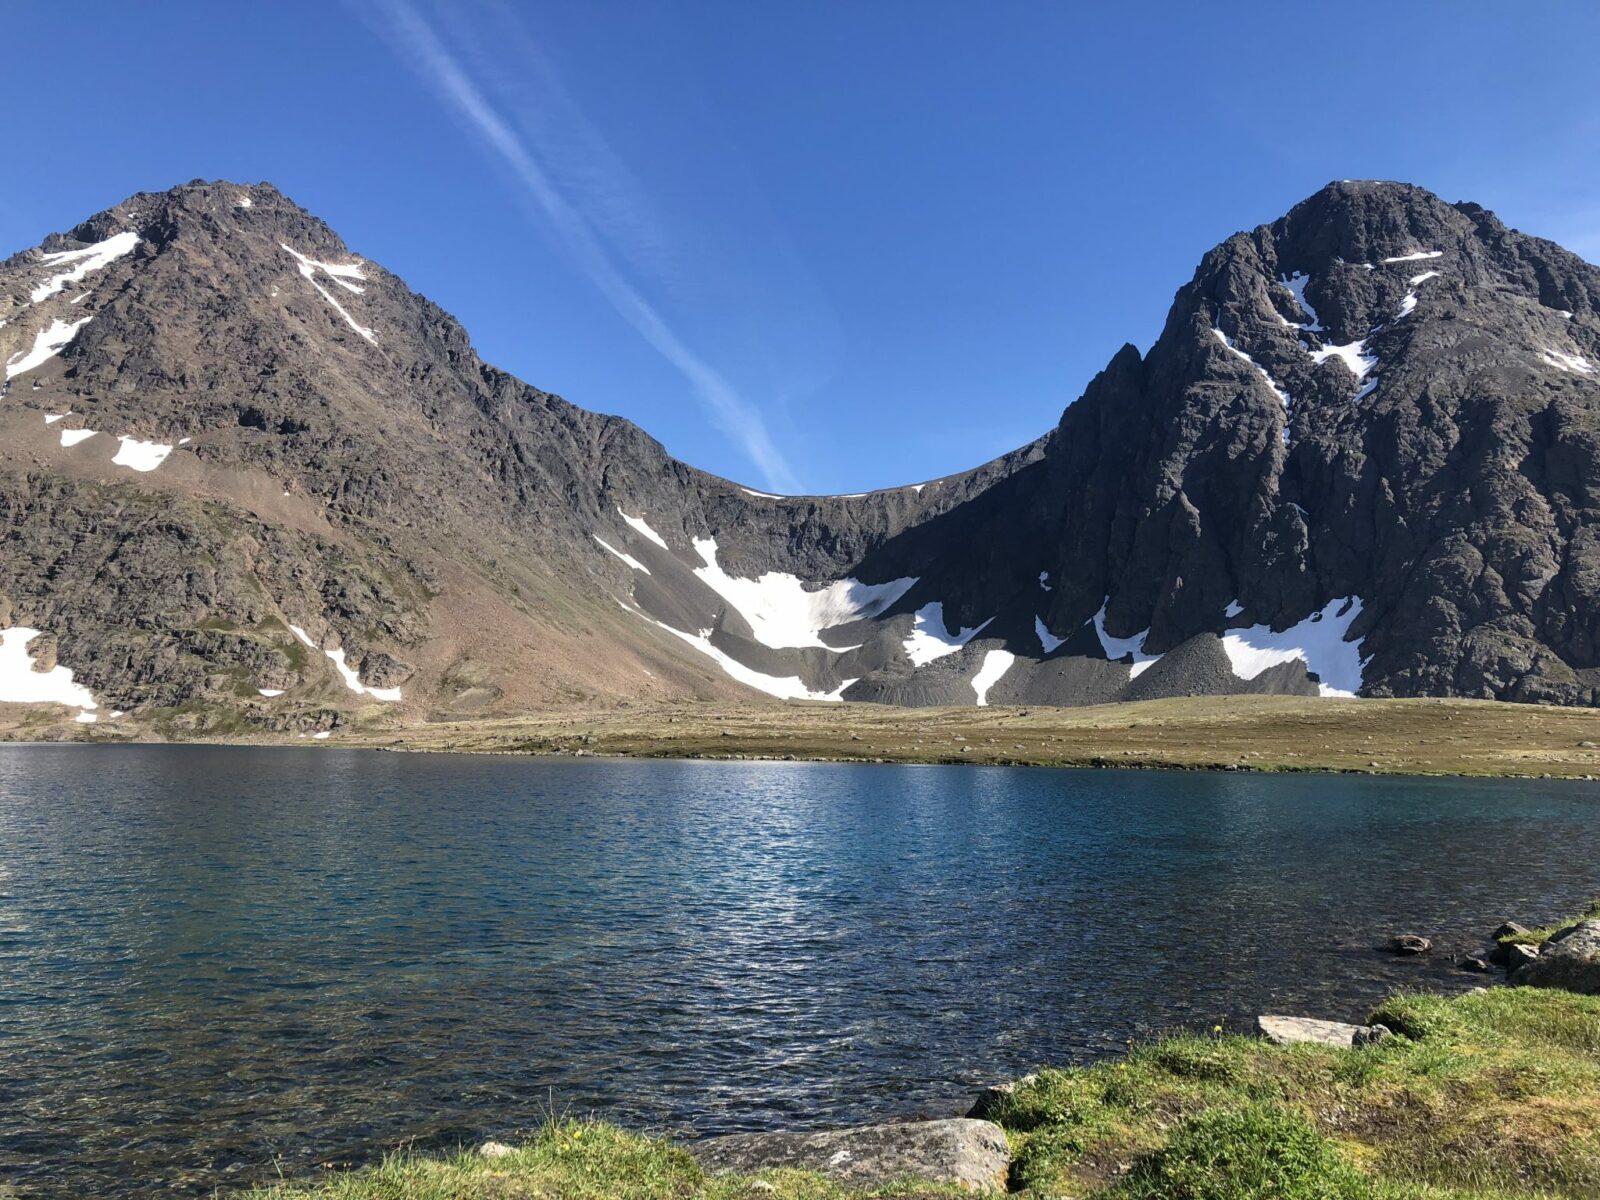 Rabbit Lake near Anchorage is an alpine lake surrounded by rocky mountains with bits of snow clinging all summer